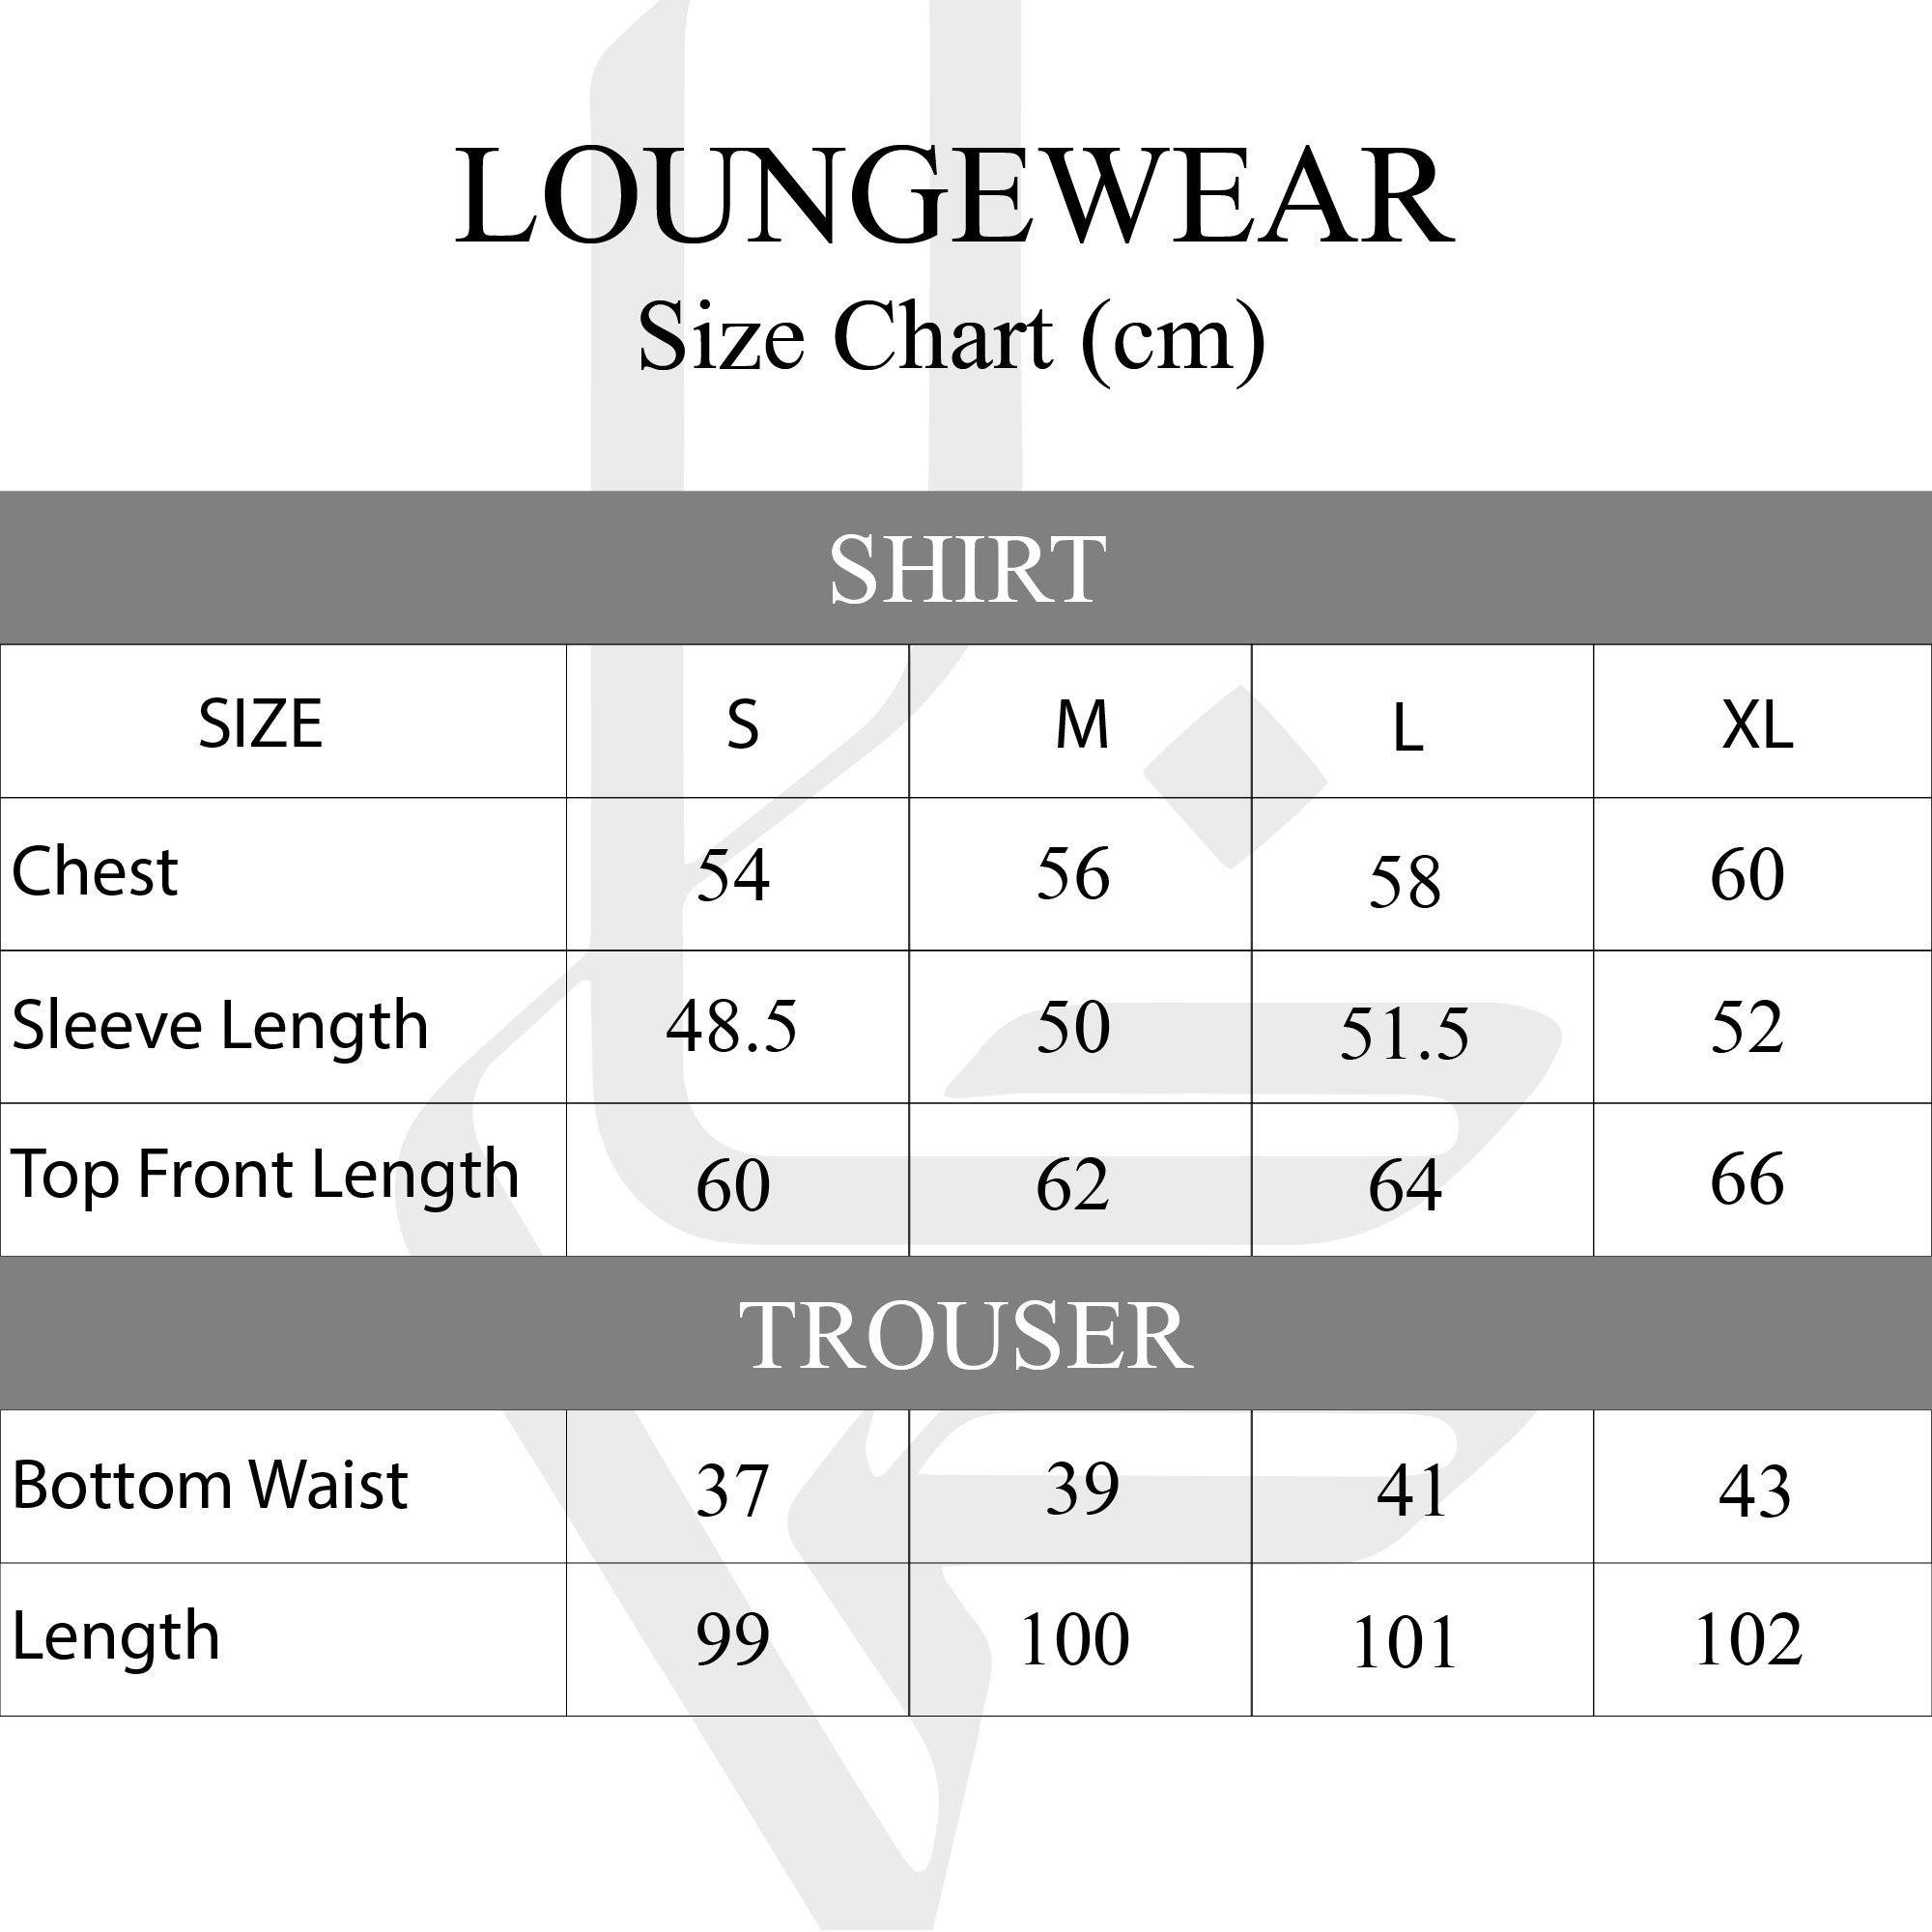 LADIES GREY LOUNGEWEAR LW-013 LOUNGEWEAR FASSTIGIR